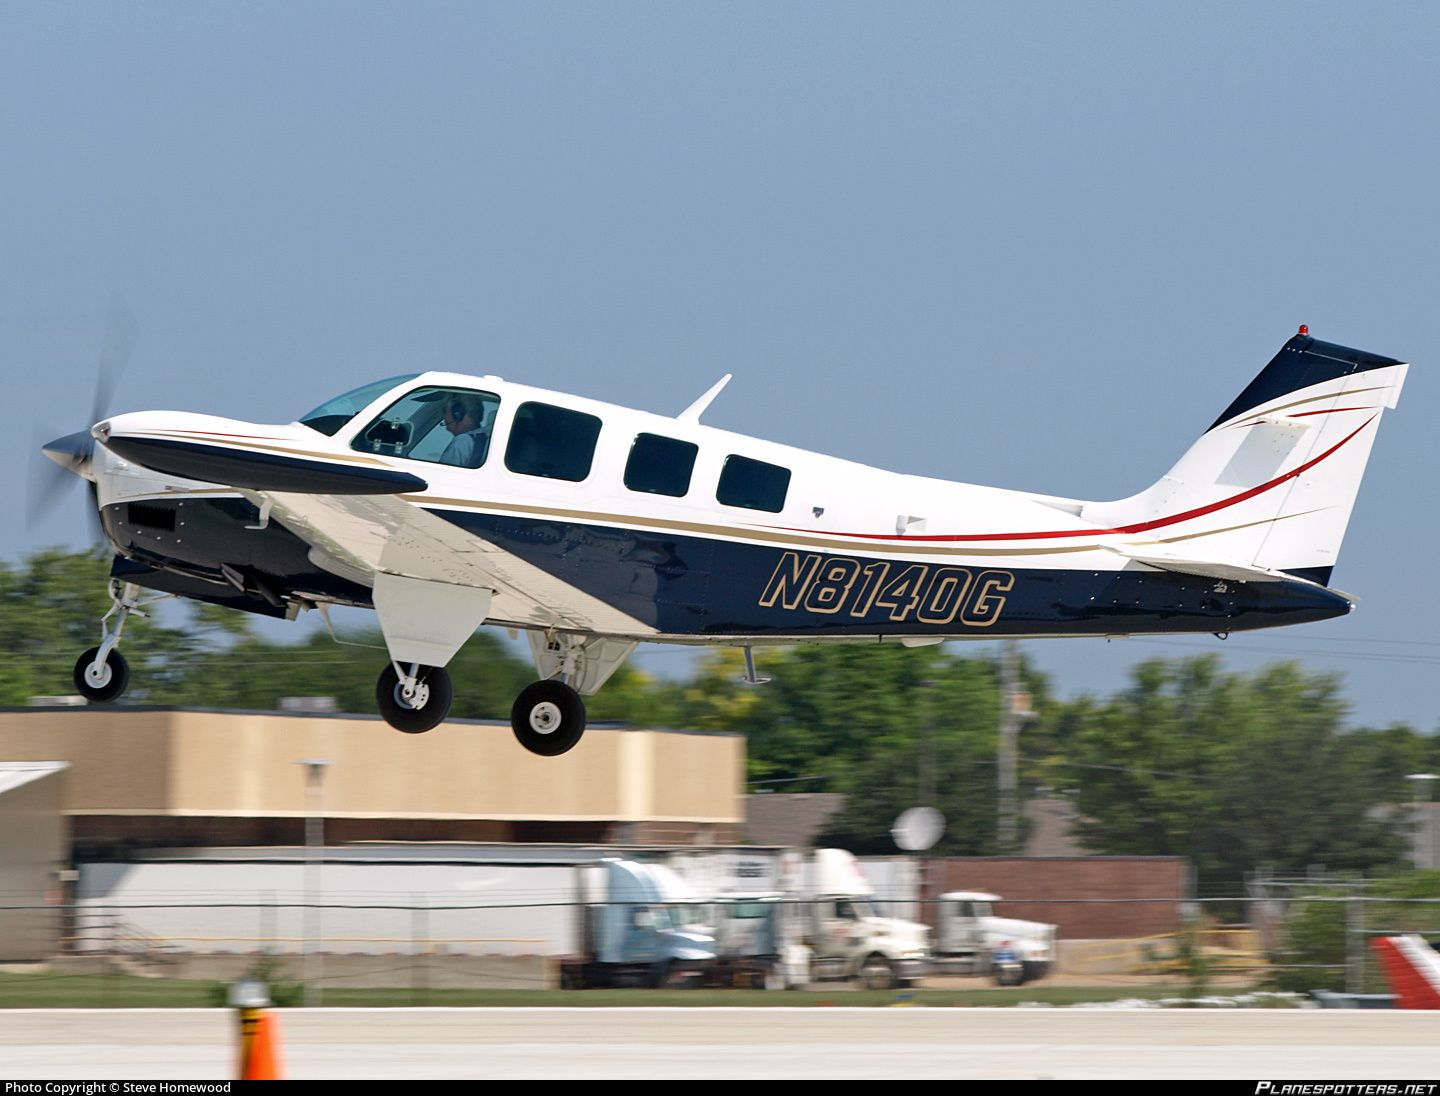 Pin by D.B. Cooper on Beechcraft SEL Private plane